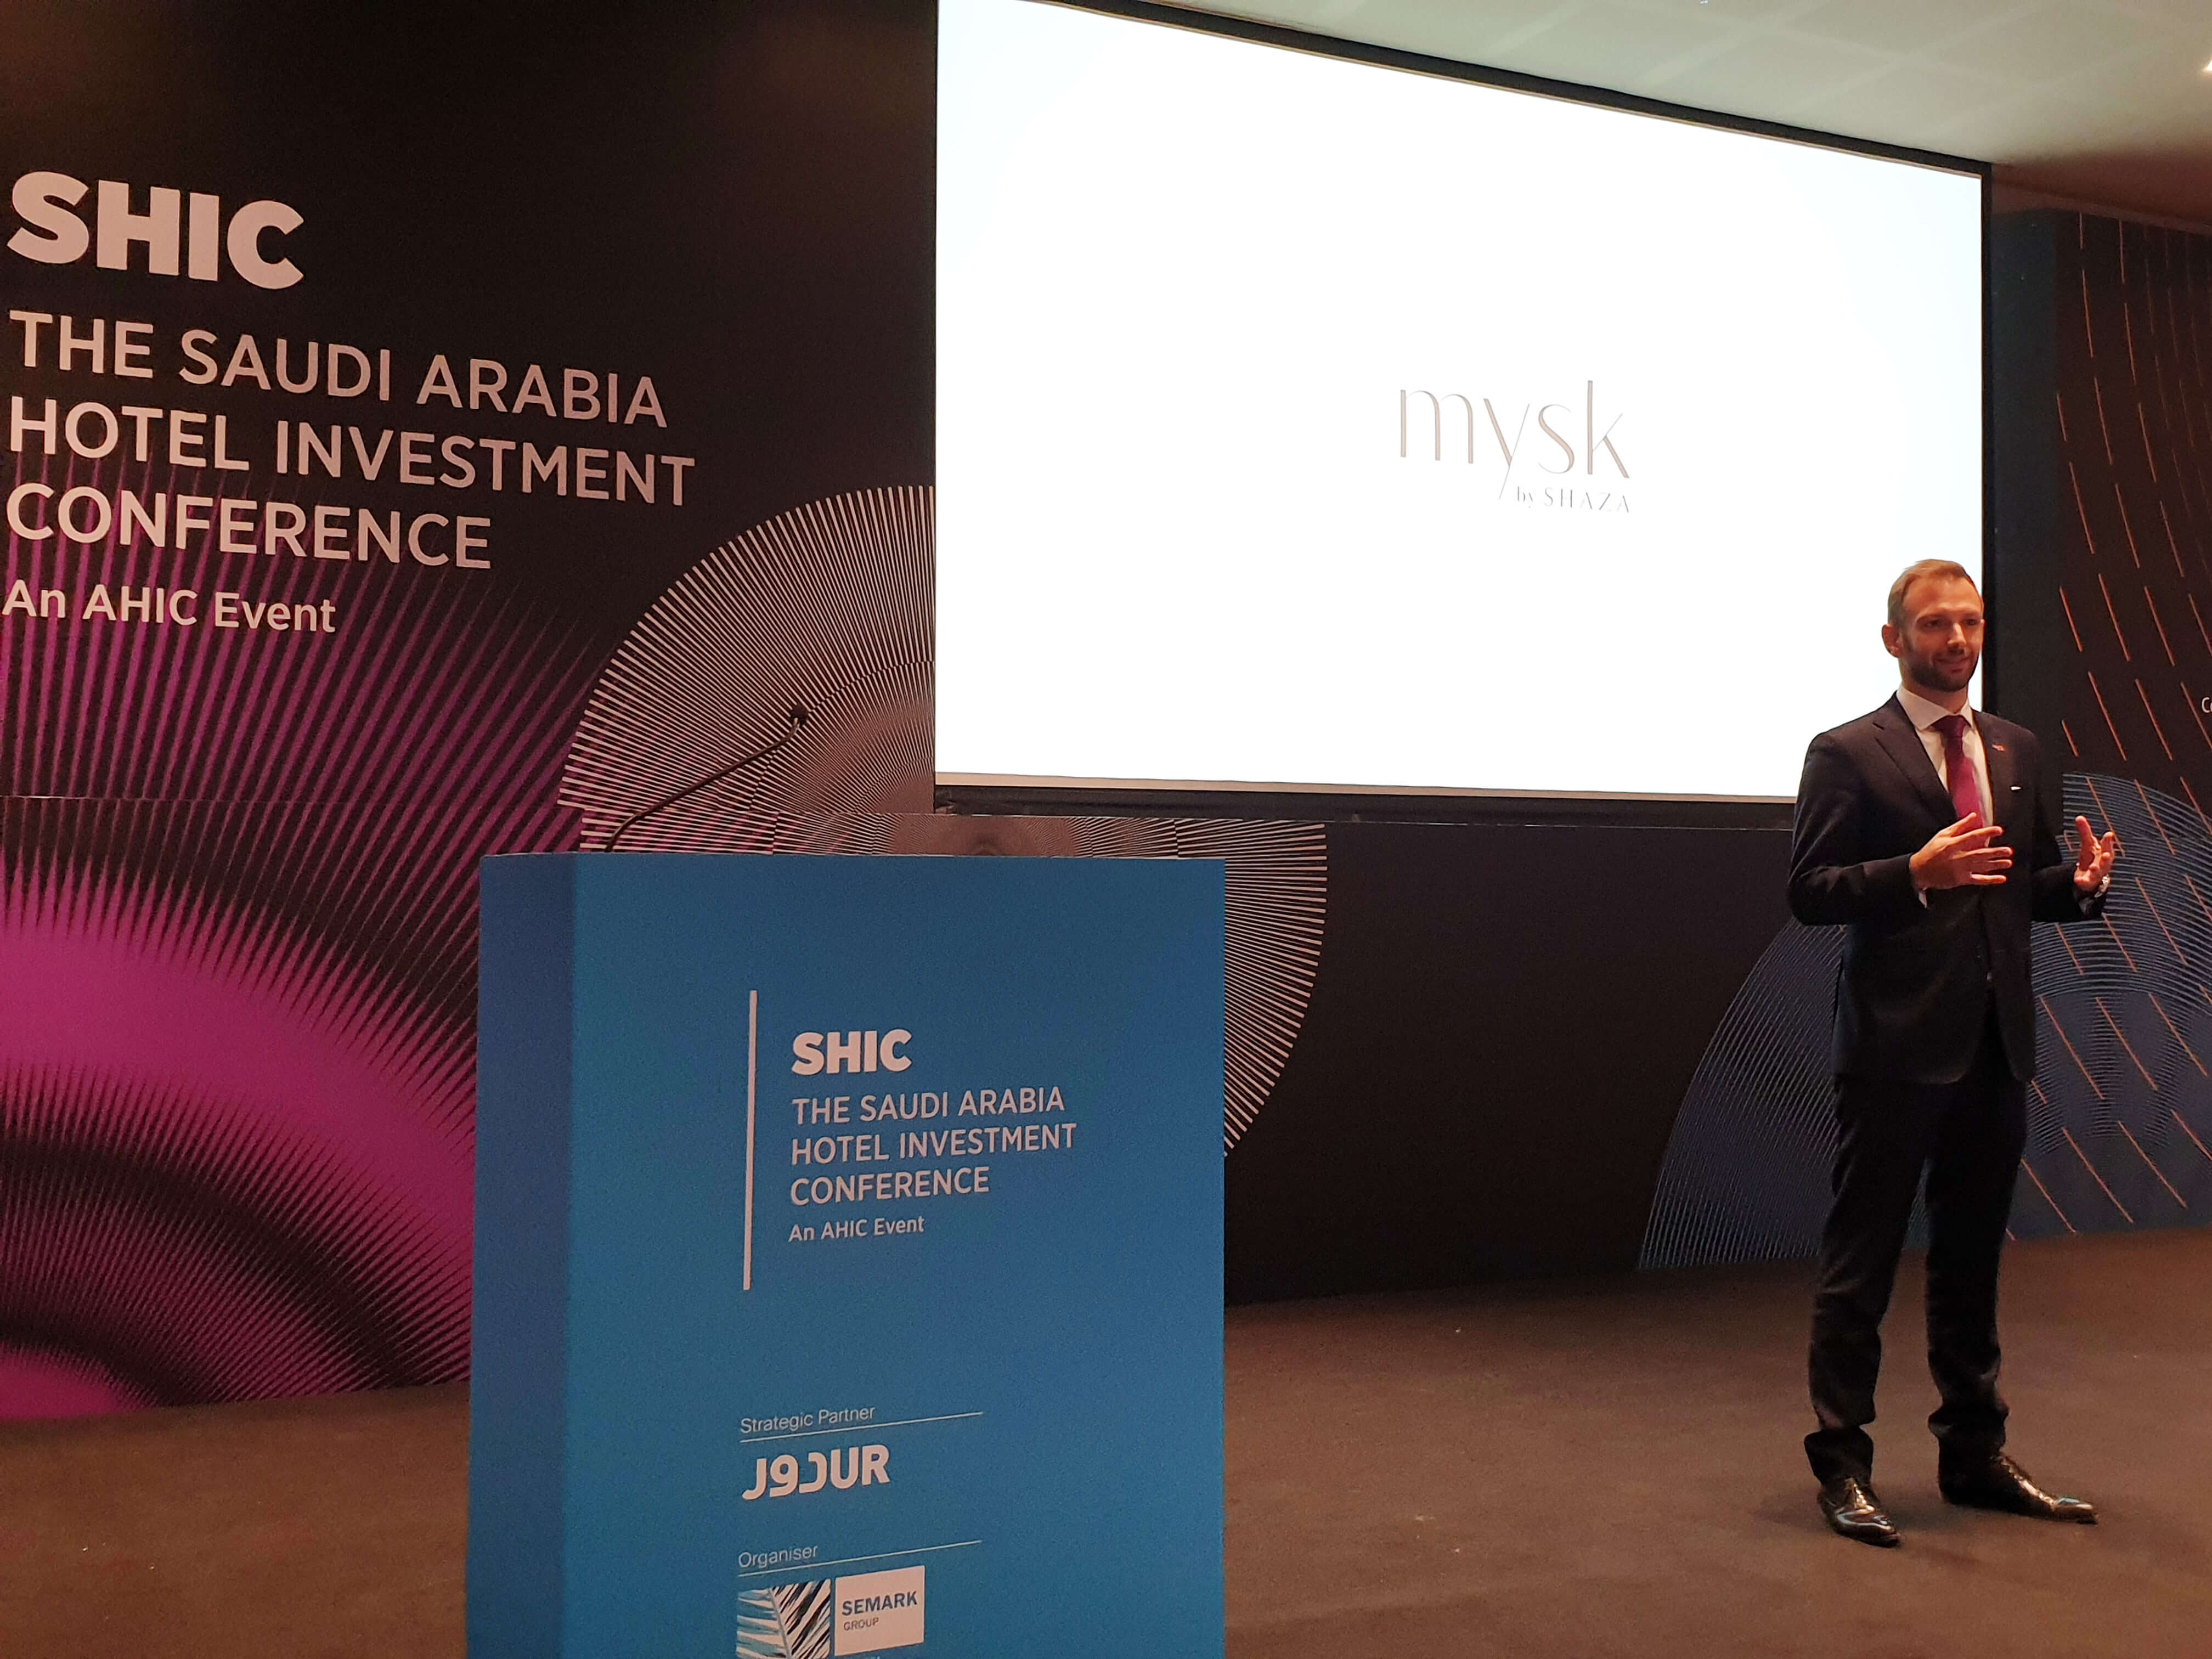 'Mysk by Shaza' Win the Pitch Among Top New Brands at the Saudi Arabia Hotel Investment Conference